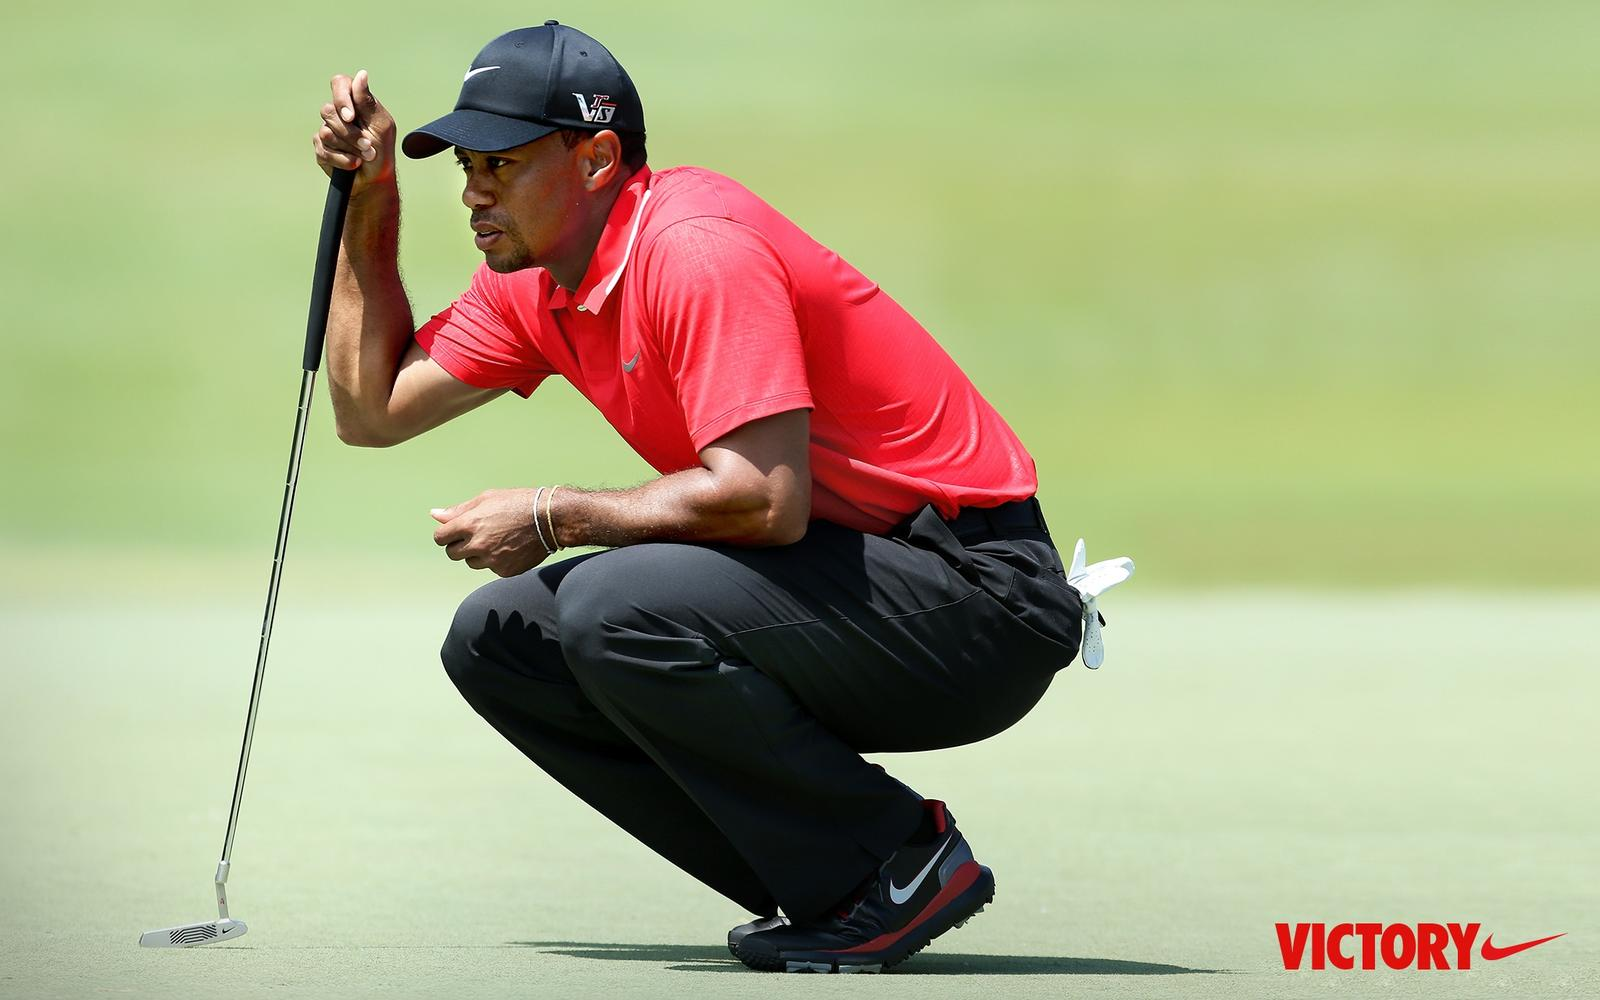 Nike Athlete Tiger Woods Claims Fourth Victory Of The